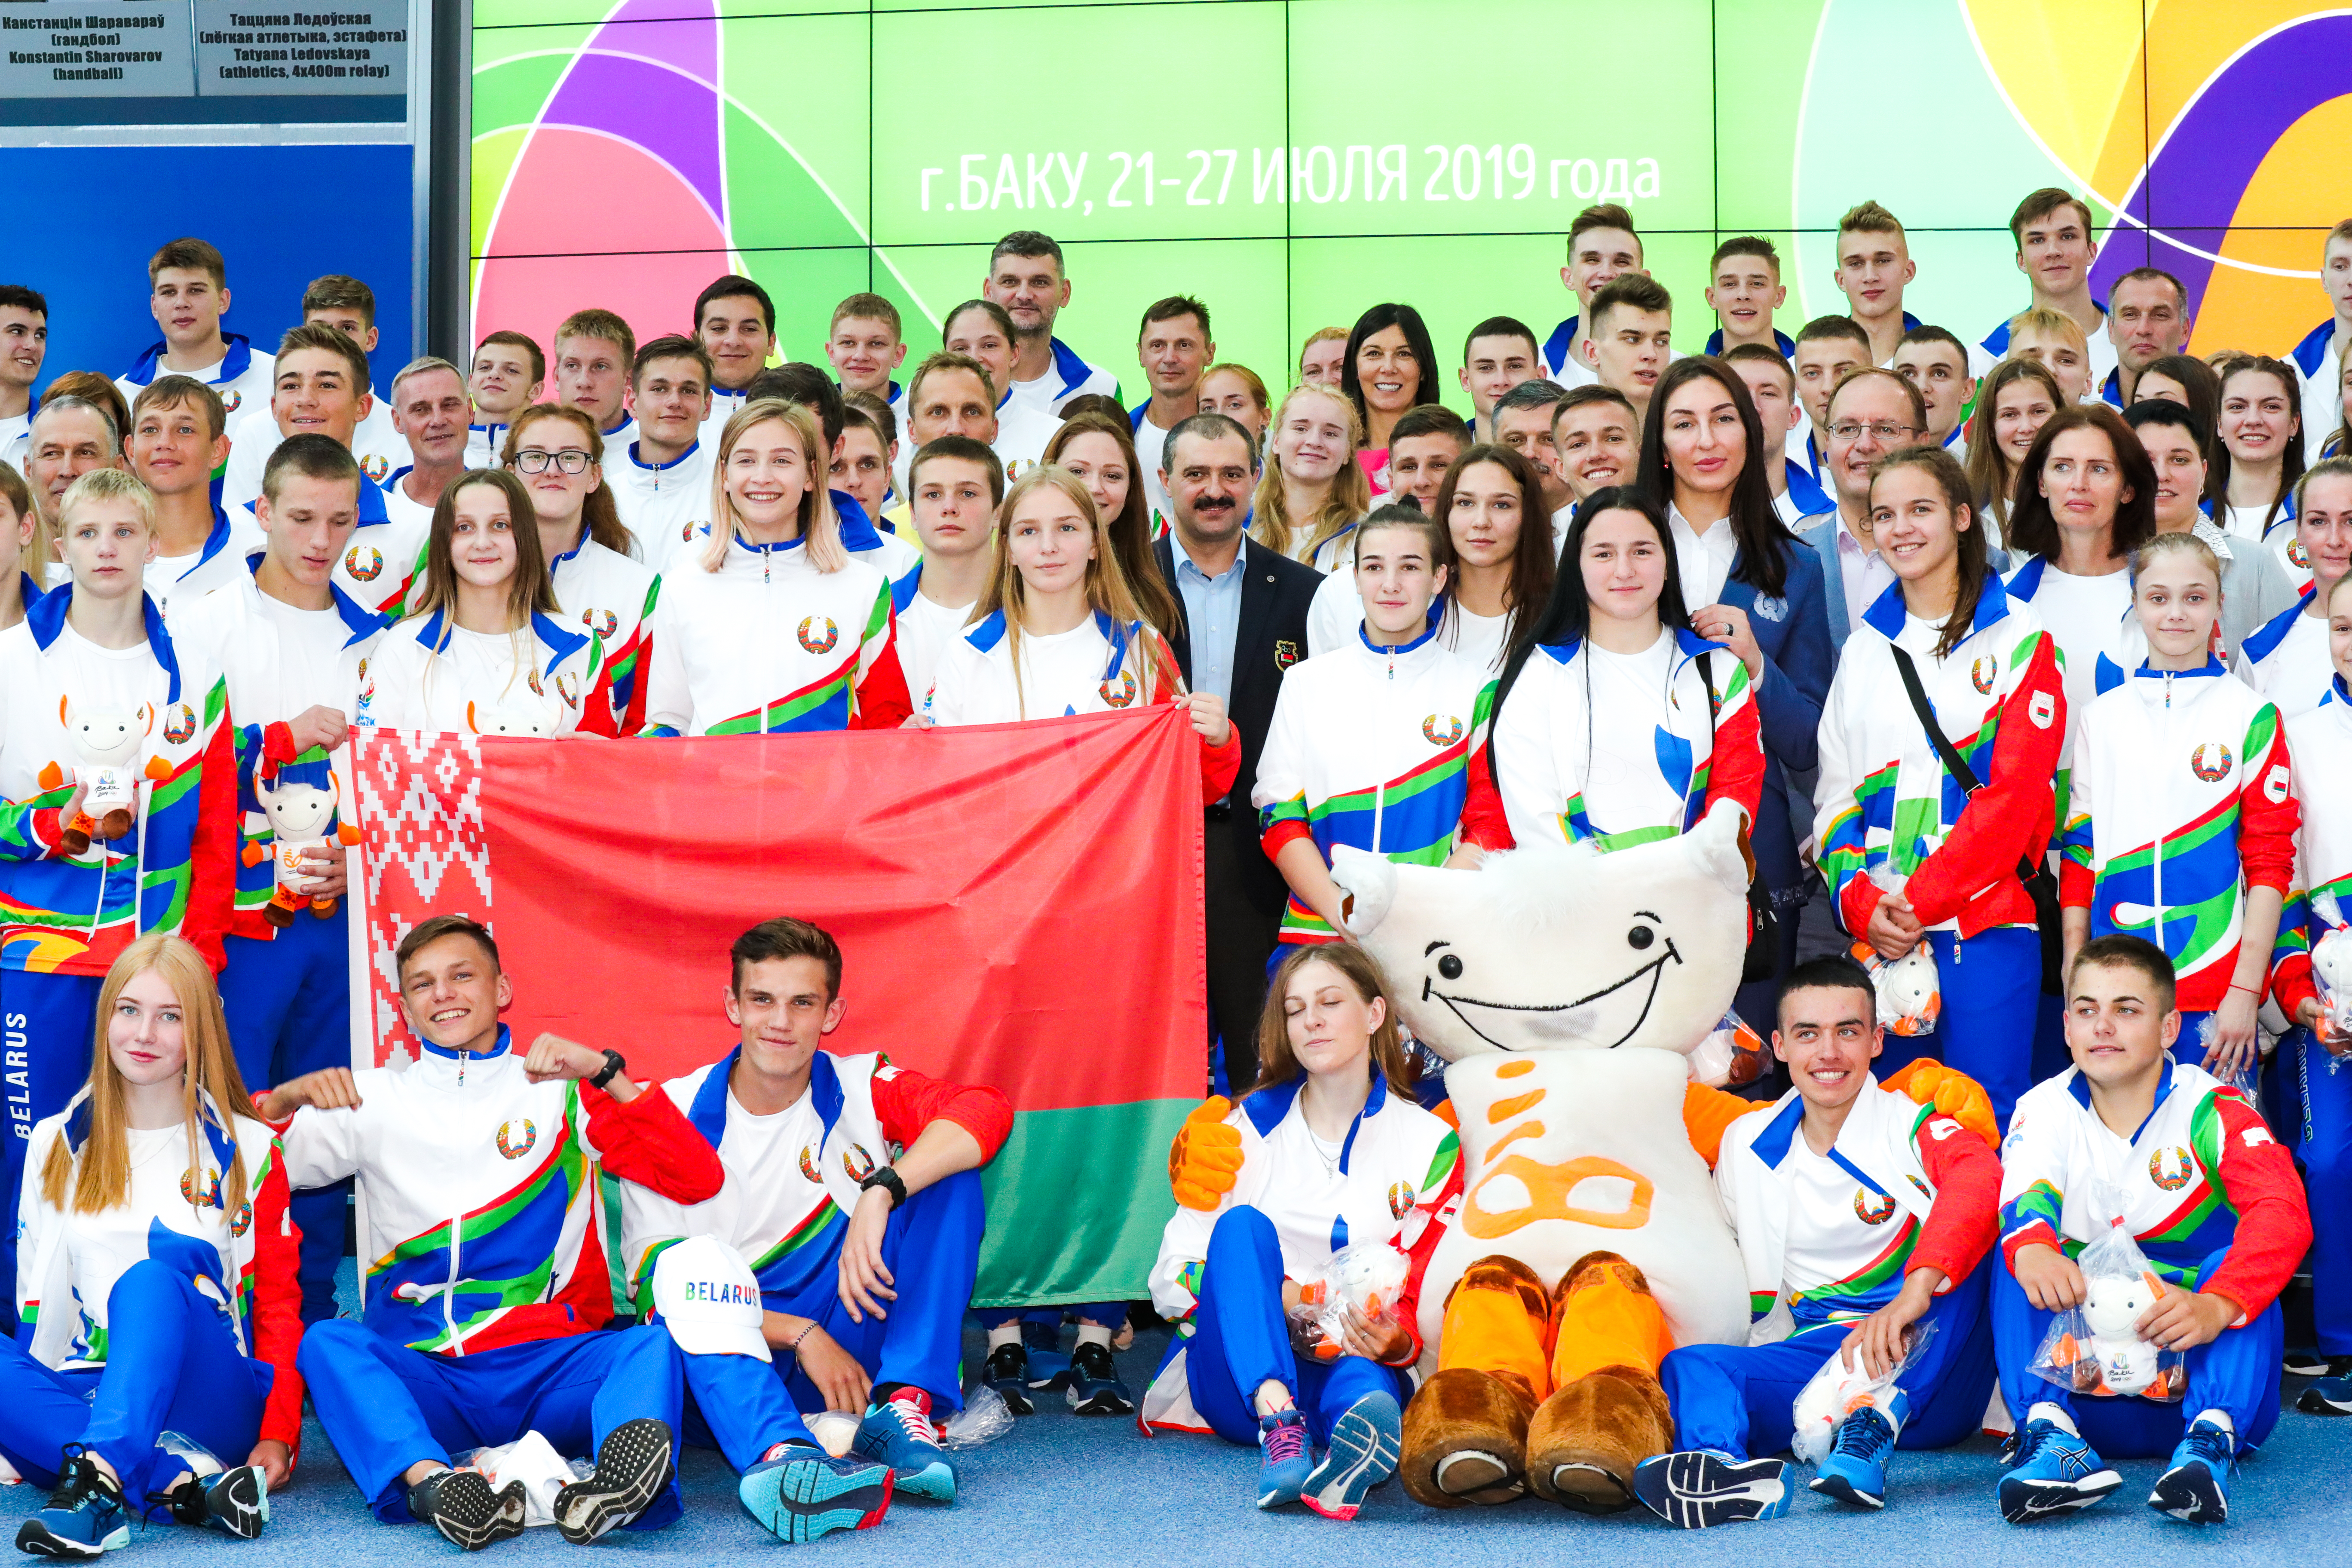 Baku-2019. NOC of Belarus passed off sport delegation for the summer EYUOF-2019